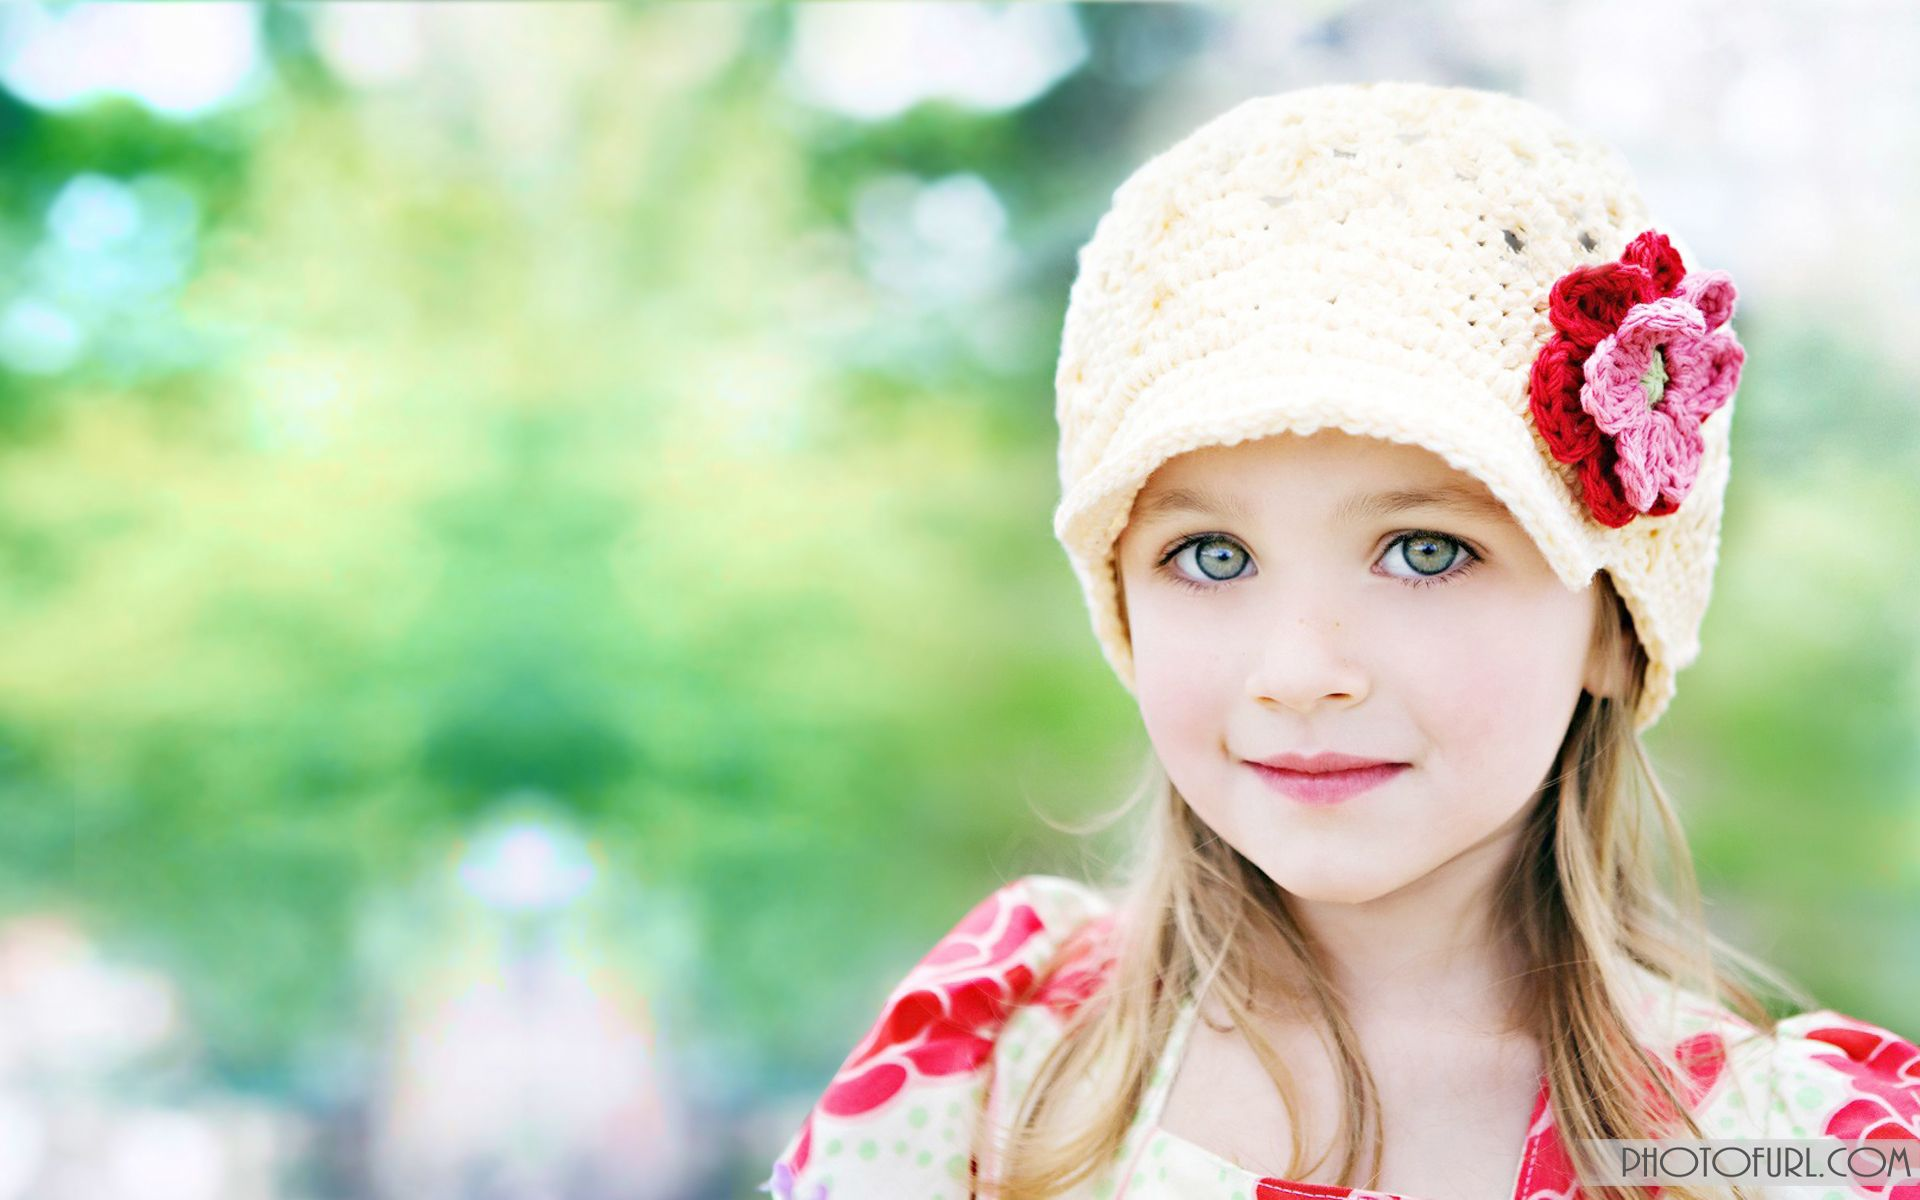 Beautiful child girl hd images download